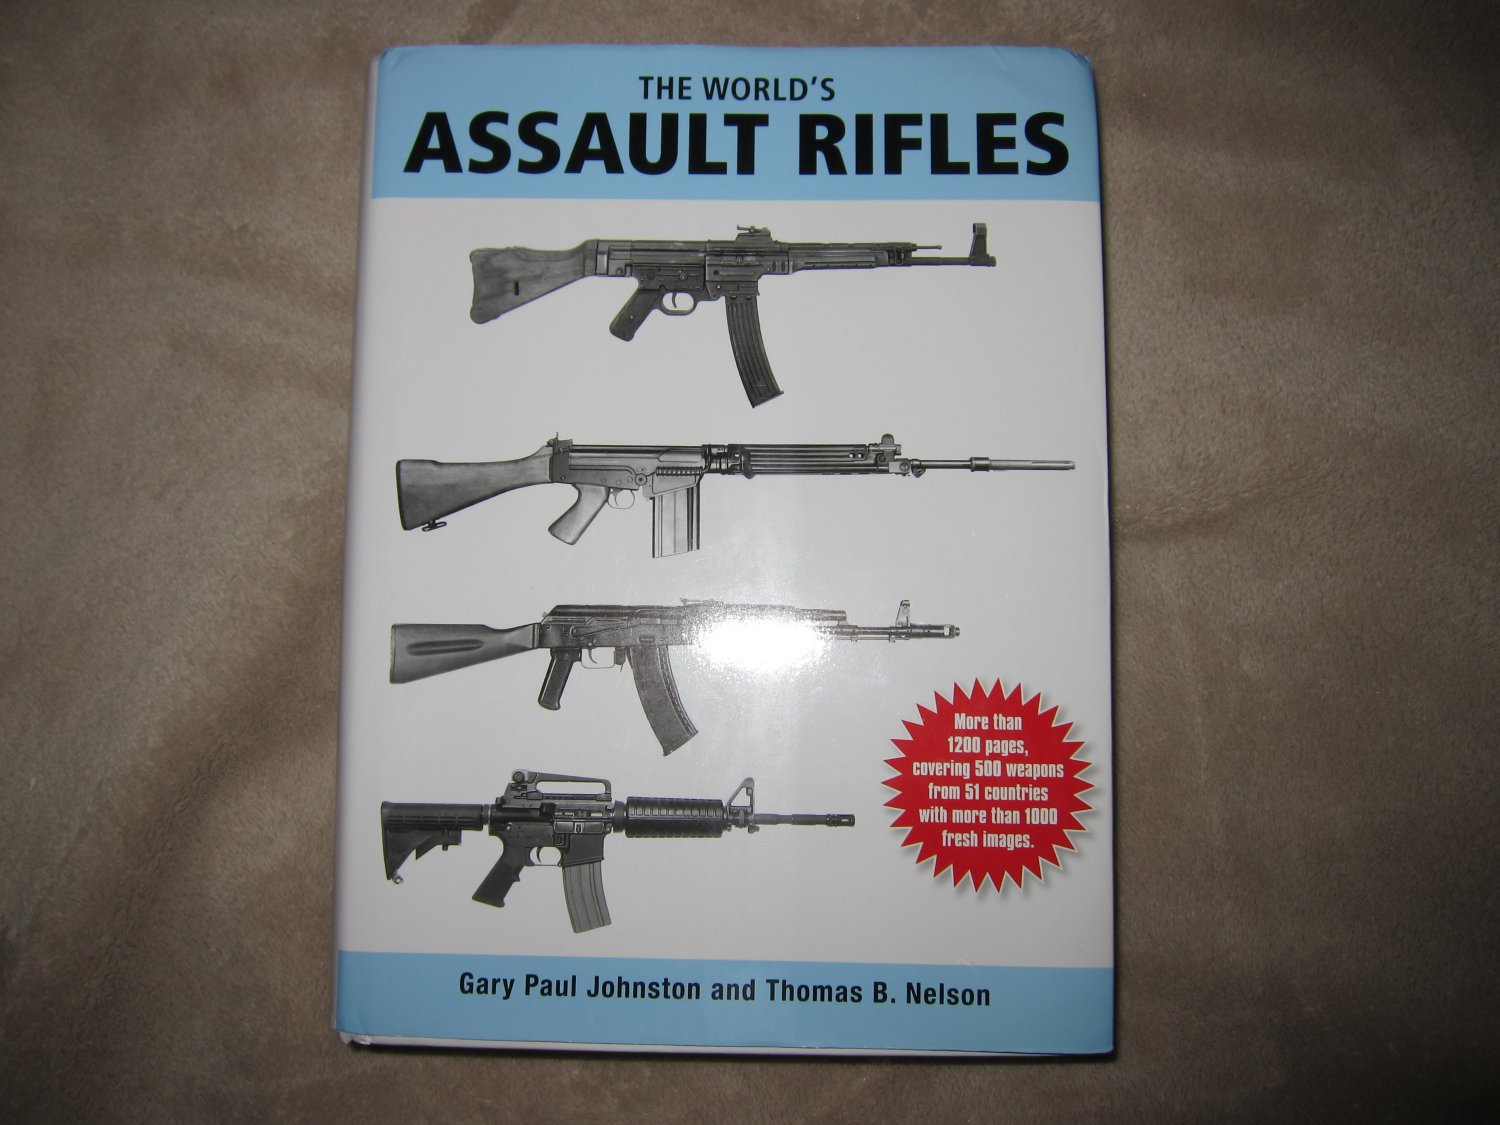 """<!--:en-->""""The World's Assault Rifles"""": Best and Most Complete Book on Military Infantry Assault Rifles (and Battle Rifles) Ever Written?  DefenseReview (DR) Highly Recommends It!<!--:-->"""